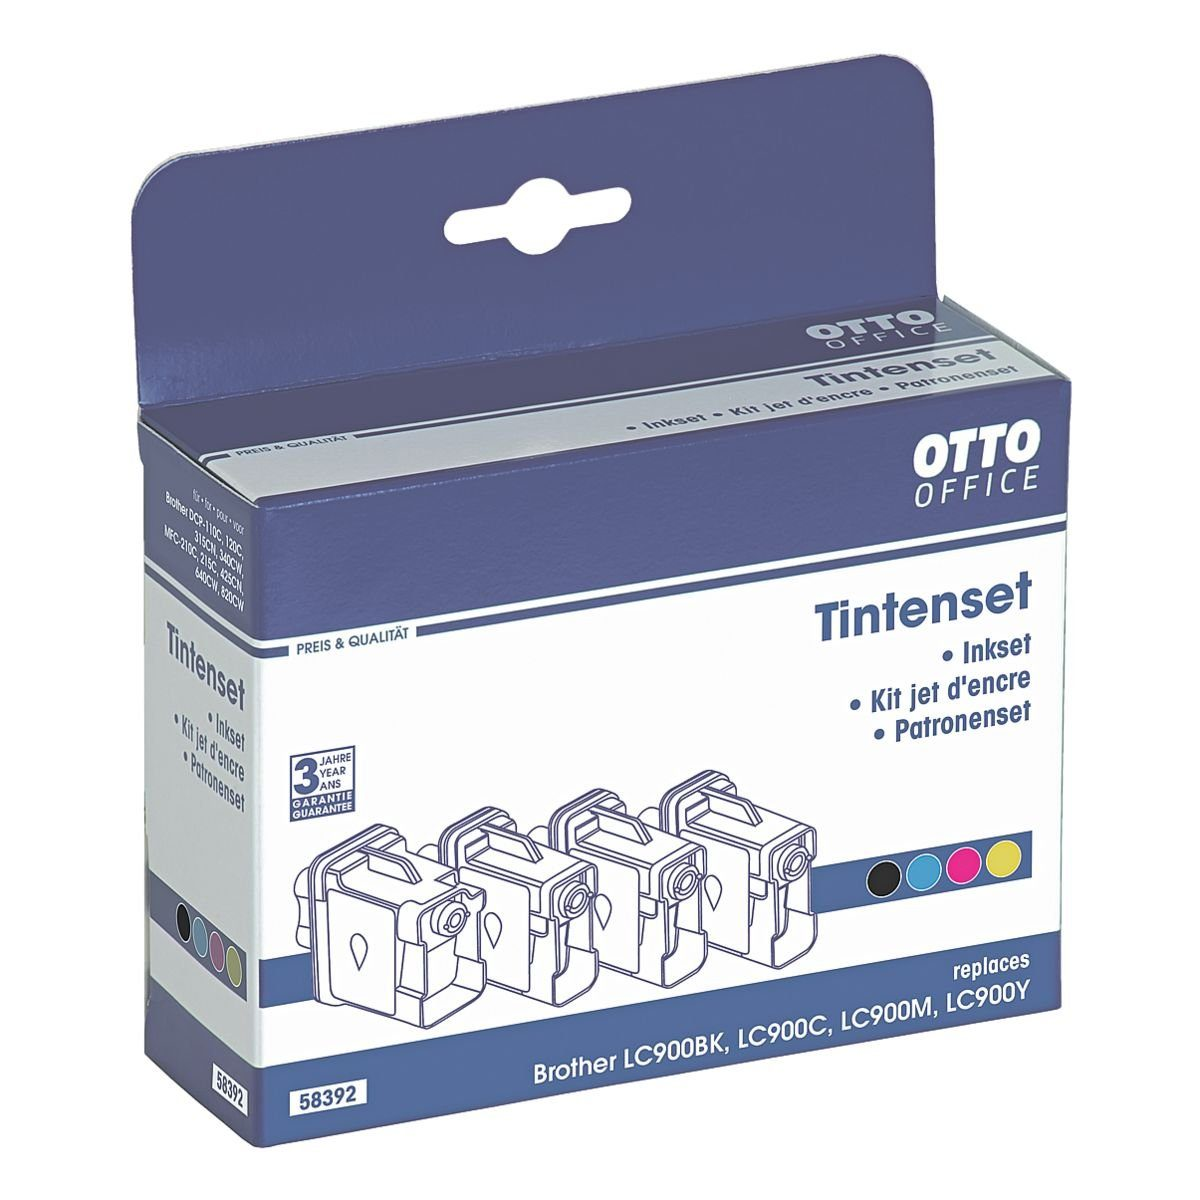 OTTO Office Standard Tintenpatronen-Set ersetzt Brother »LC900«